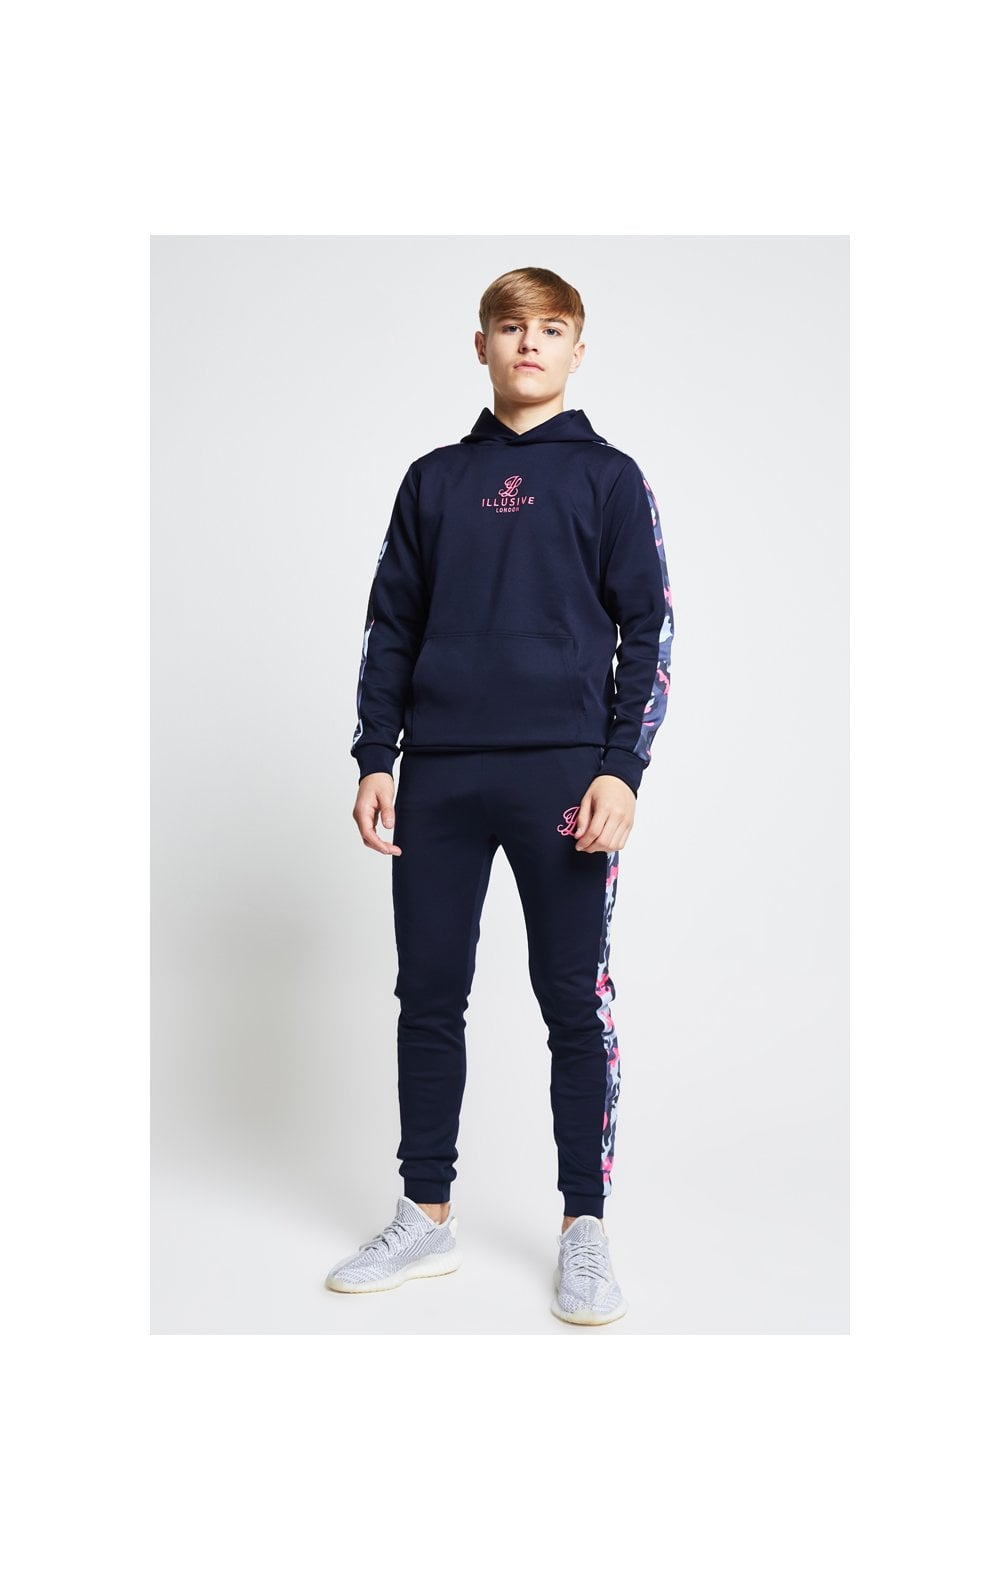 Illusive London Fade Panel Cuffed Joggers – Navy & Neon Pink Camo (5)